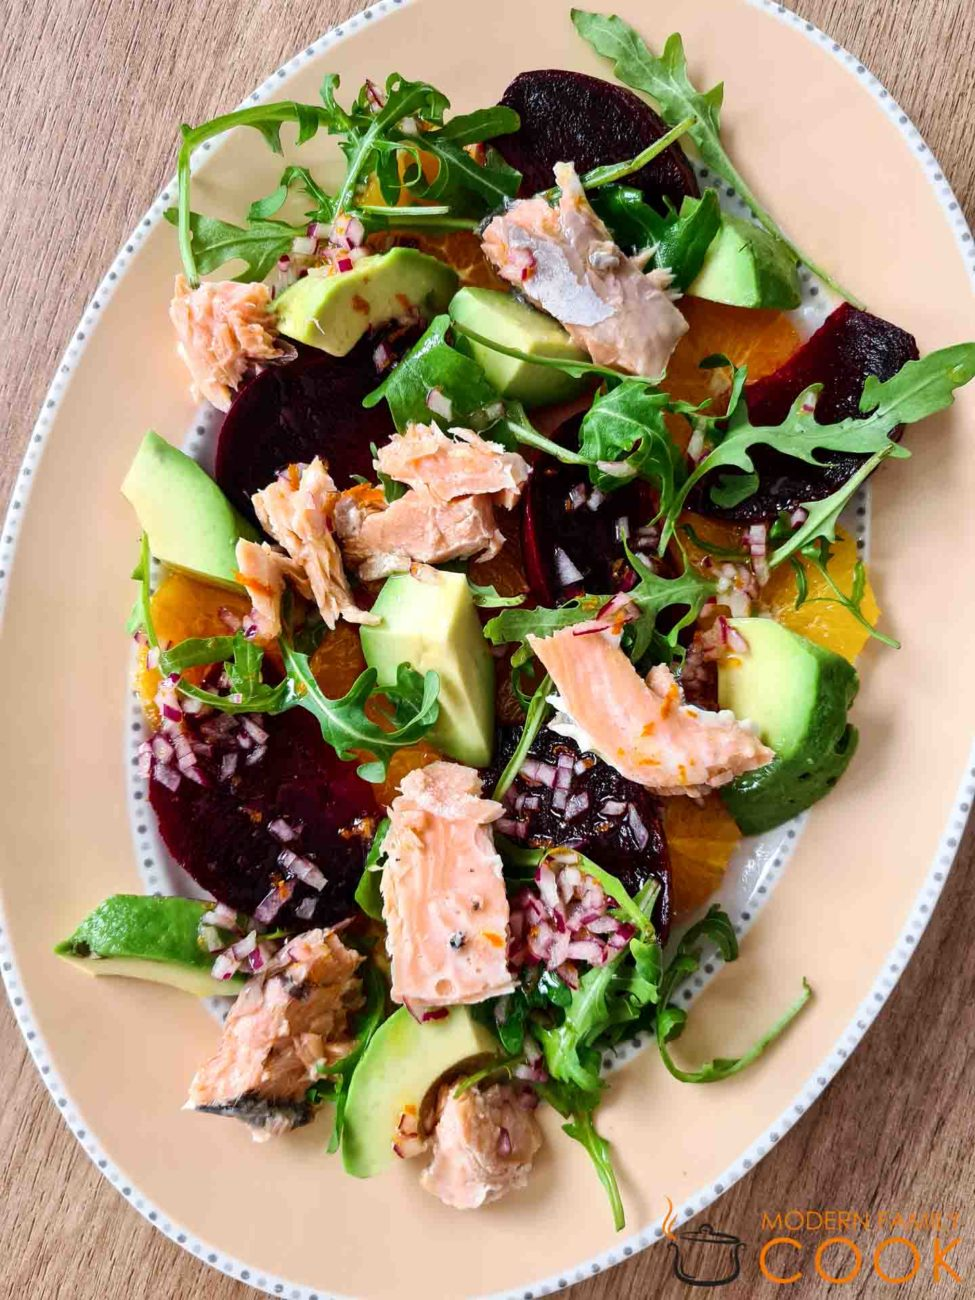 Avocado, beet and orange salad with salmon